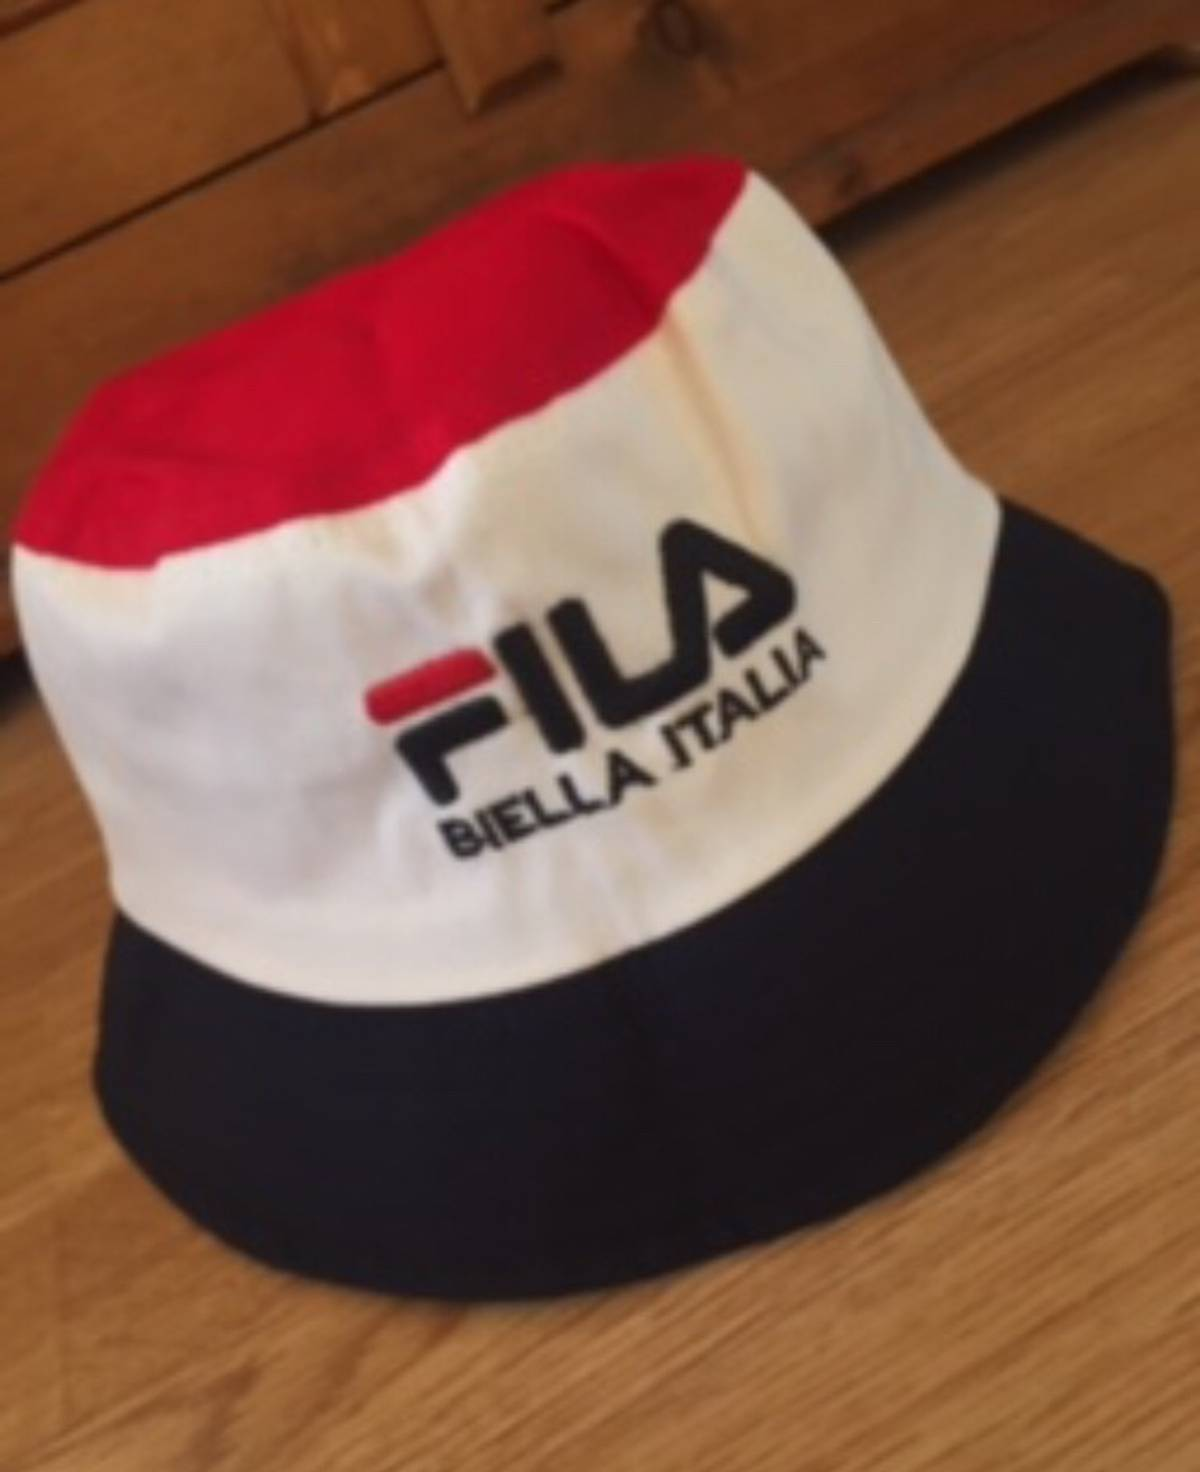 c9a7a309414 Fila  FILA Rare Mens Unisex 90 s RAVER BLUE WHITE RED Casuals VINTAGE  Italia Bucket HAT (M)  Size one size - Hats for Sale - Grailed